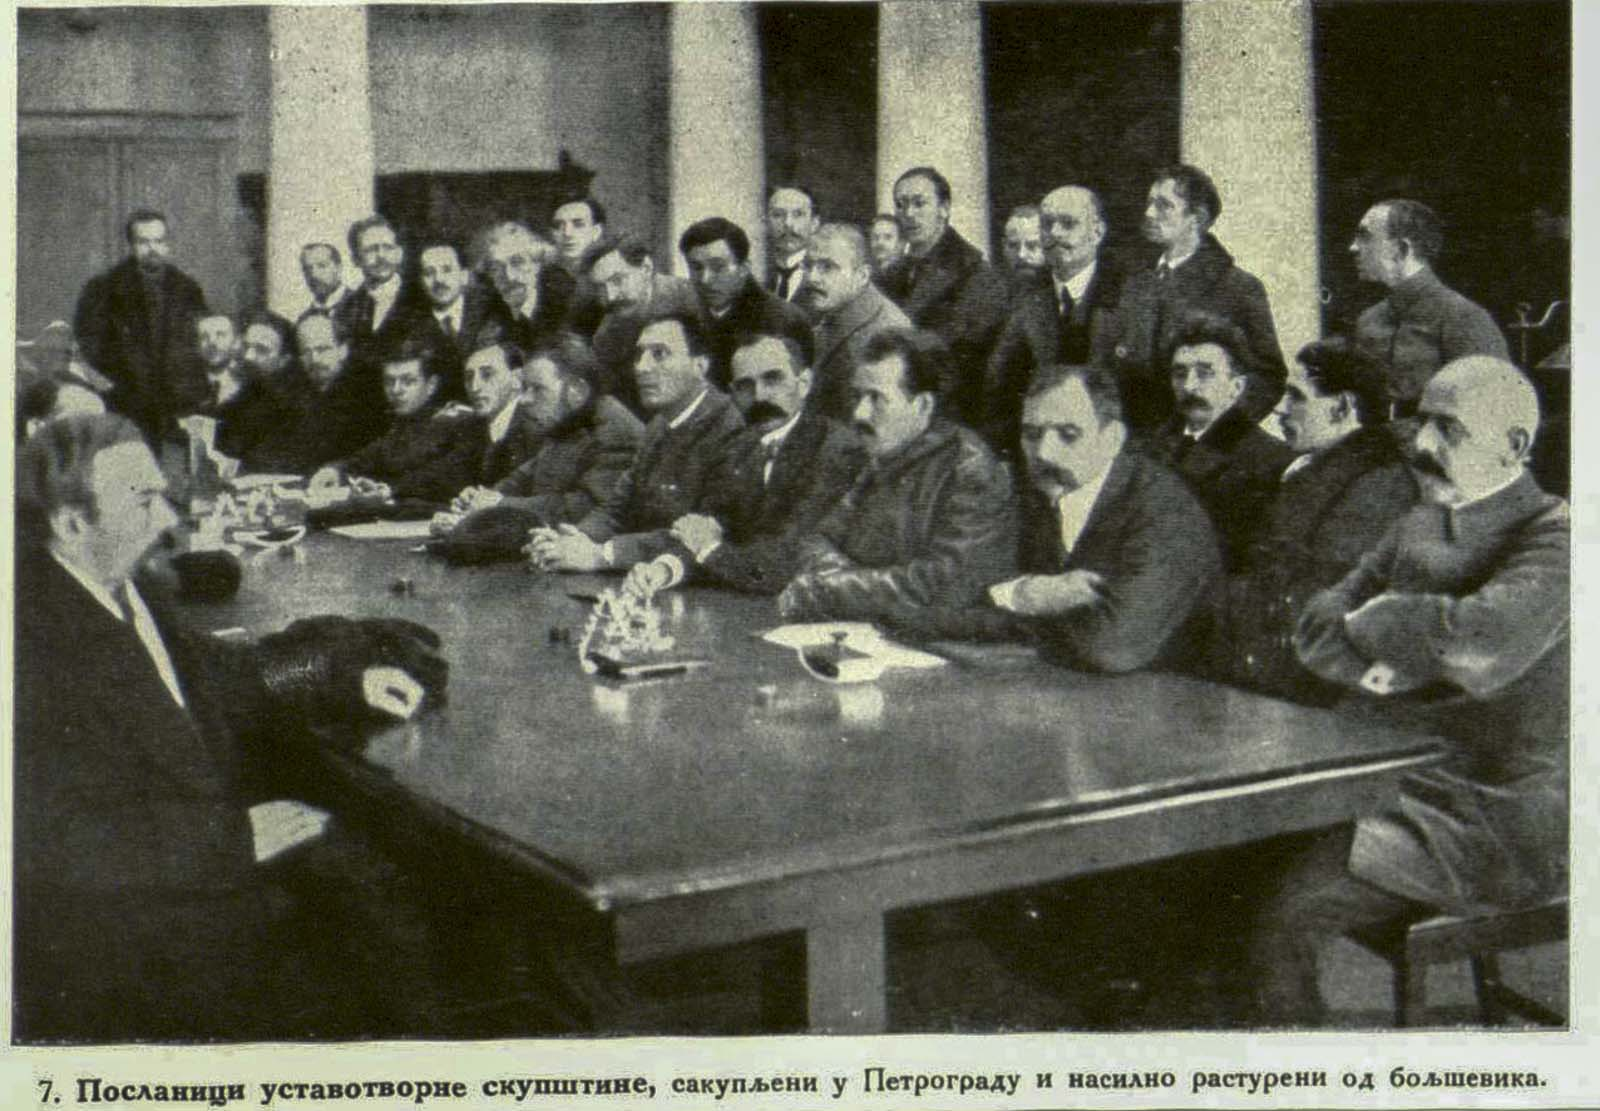 russian revolution and world war two Revolution in russia/soviet russia before world war ii causes of the russian revolution: long -term causes included: unwillingness of the autocracy to grant political reforms--all political opposition is therefore revolutionary.